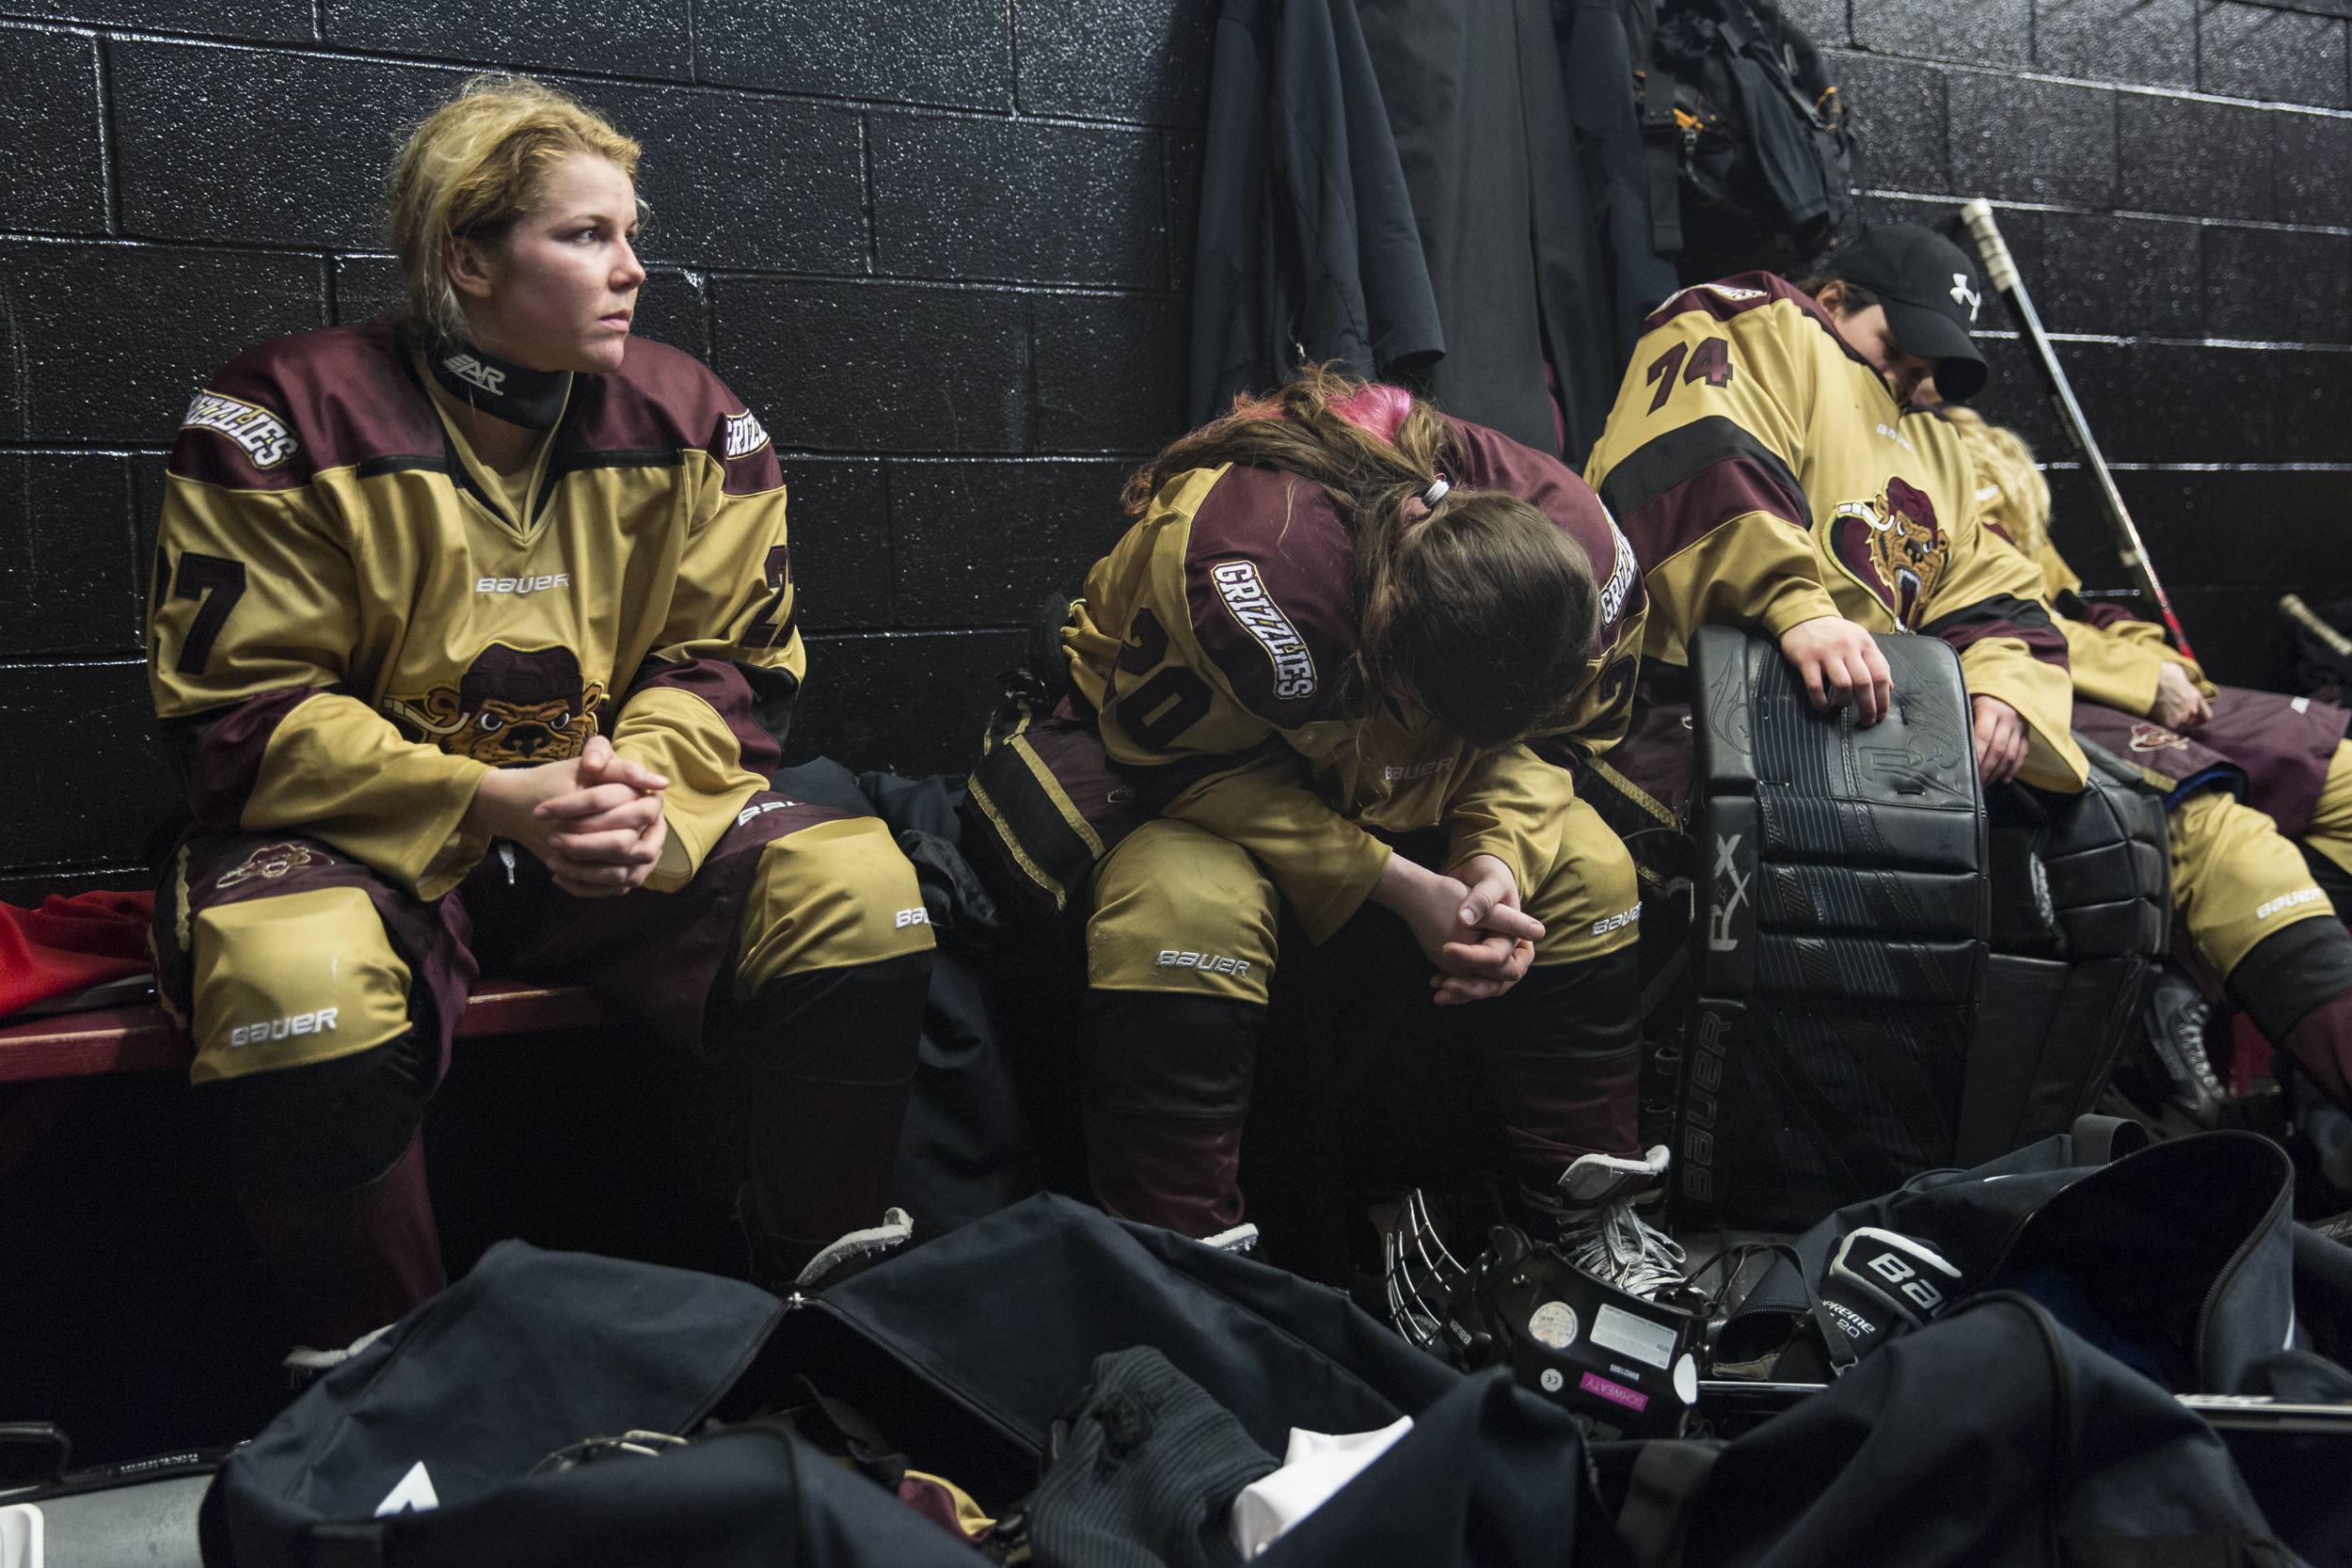 (from left) Shanley Austin and her Rochester Grizzlies teammates, Lexi Firkins and Serena Angelo, rest after the second period of their first tournament game against Troy-Albany on March 6, 2015 at Bill Gray's Regional Iceplex in Rochester, NY. Troy-Albany scored in the late minutes of the second period to take a 1-0 lead.